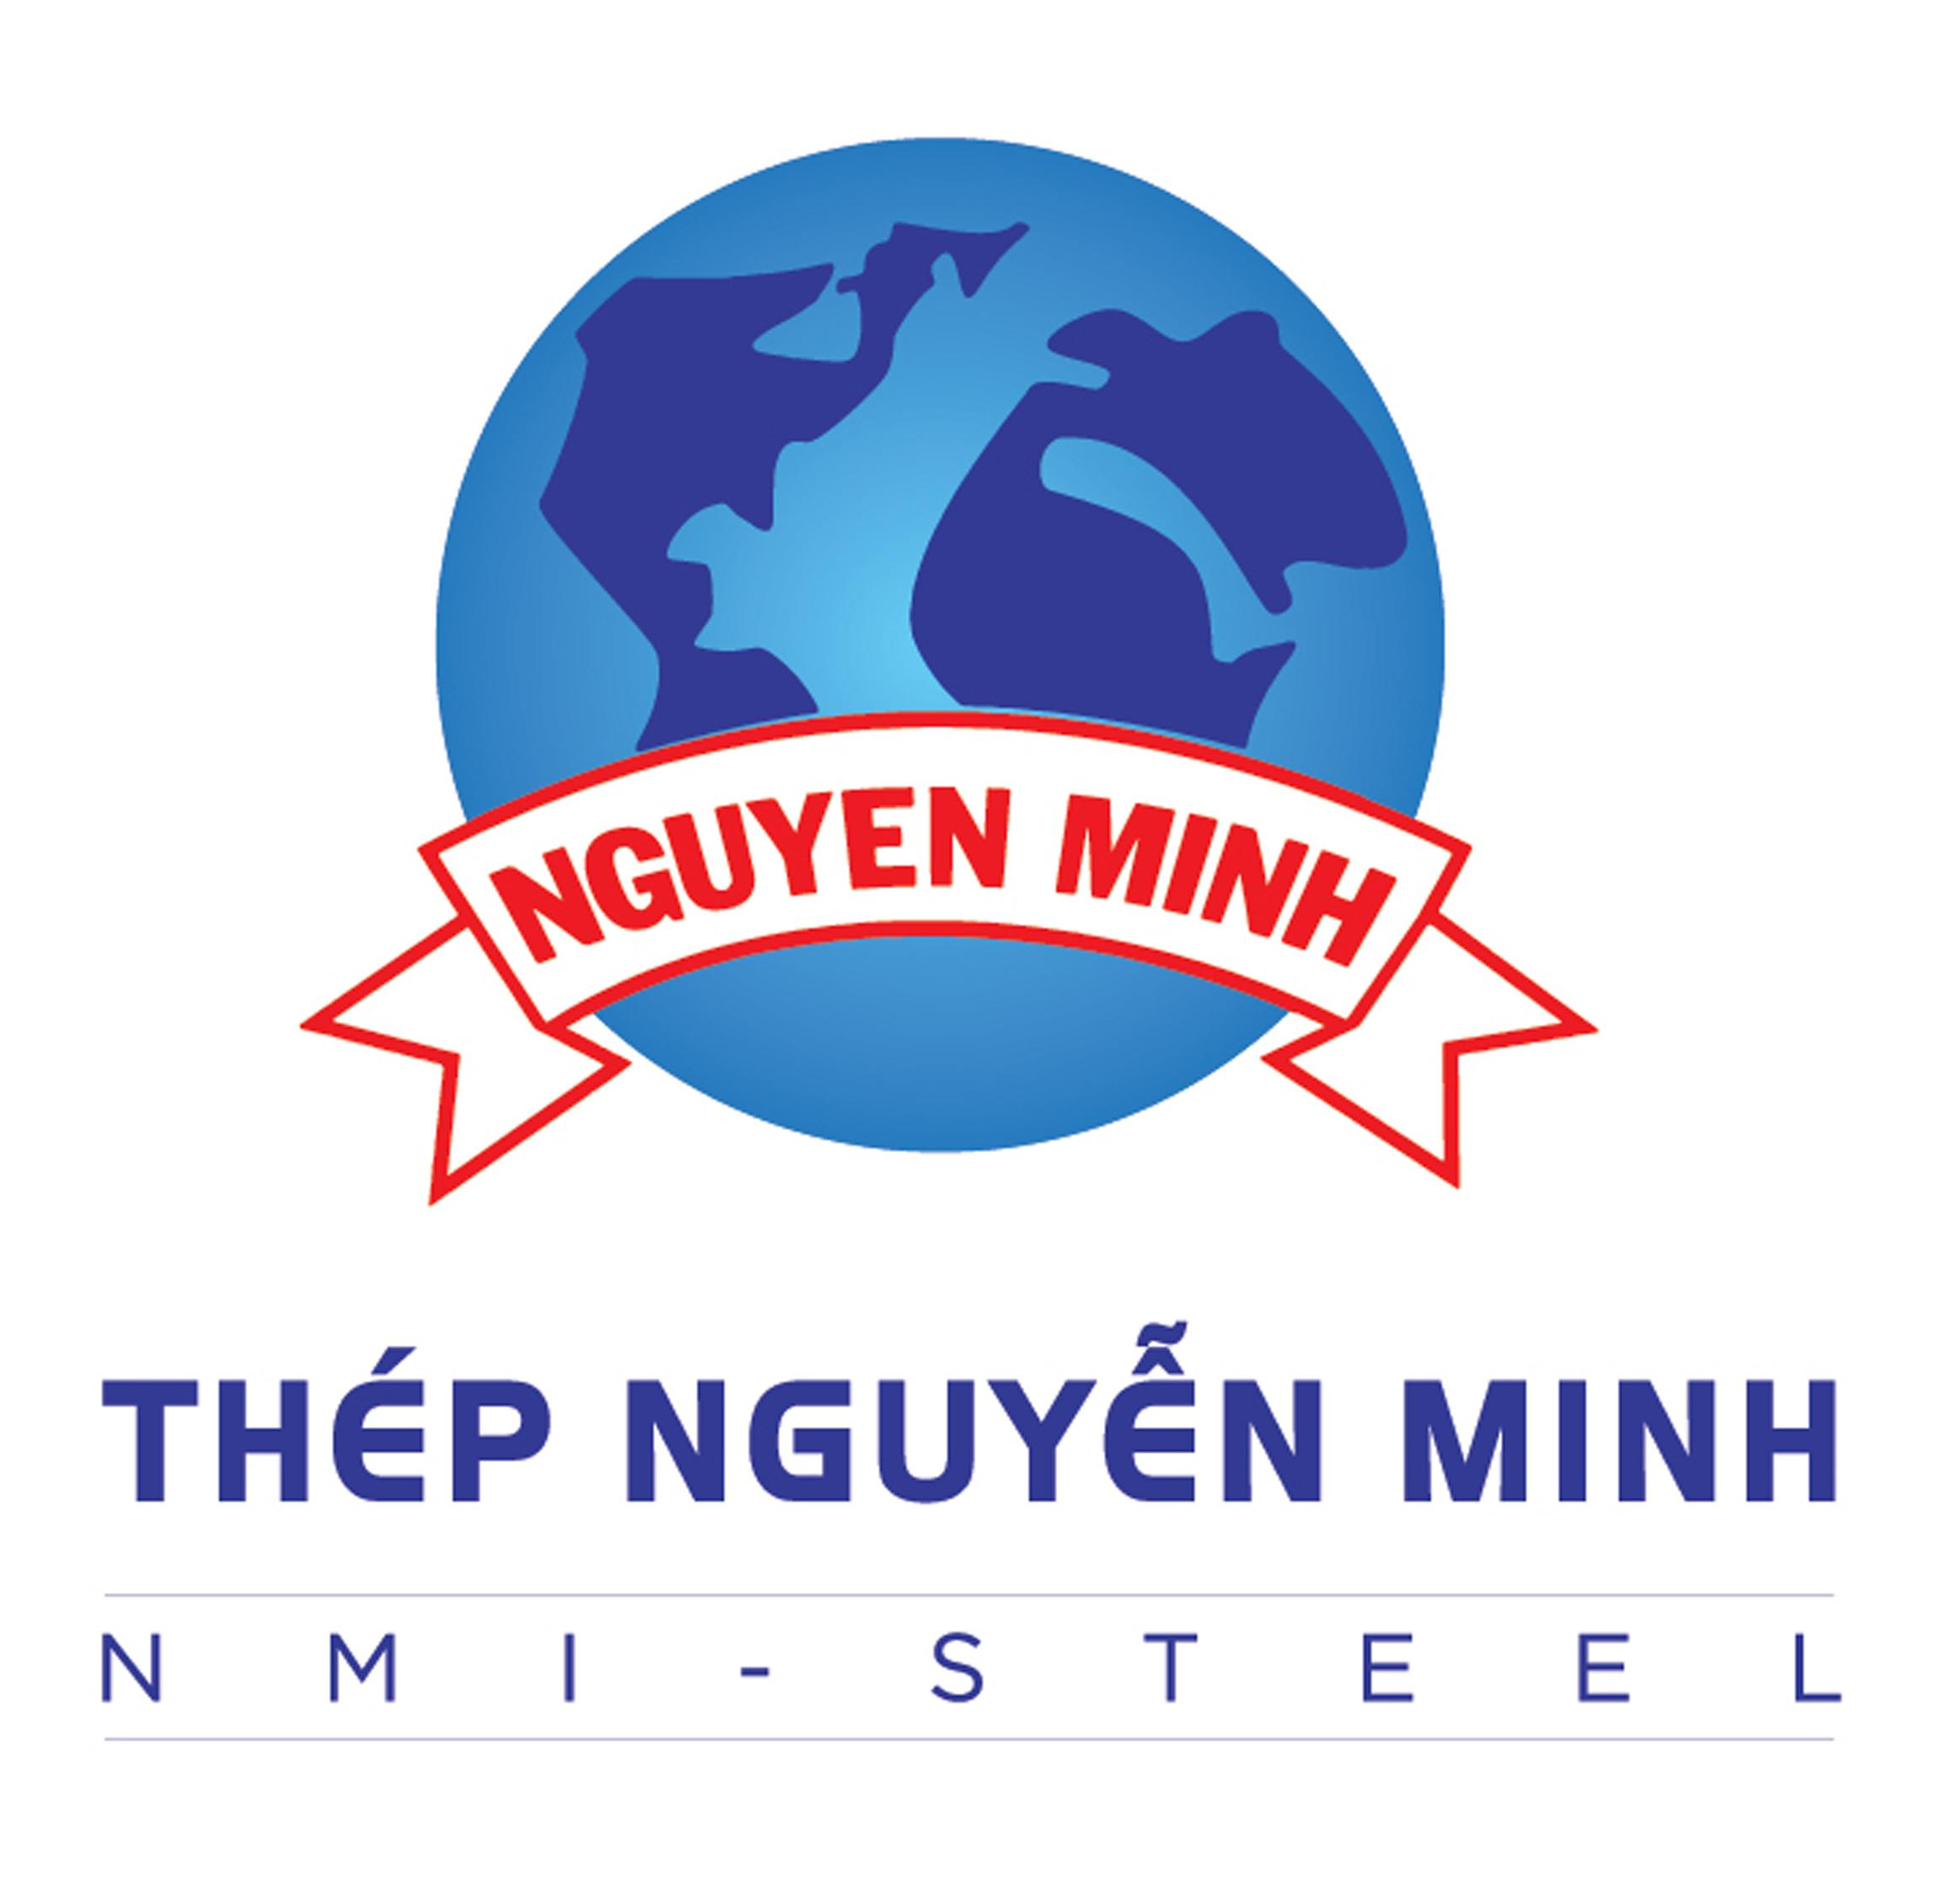 NGUYEN MINH STEEL GROUP JOINT STOCK COMPANY